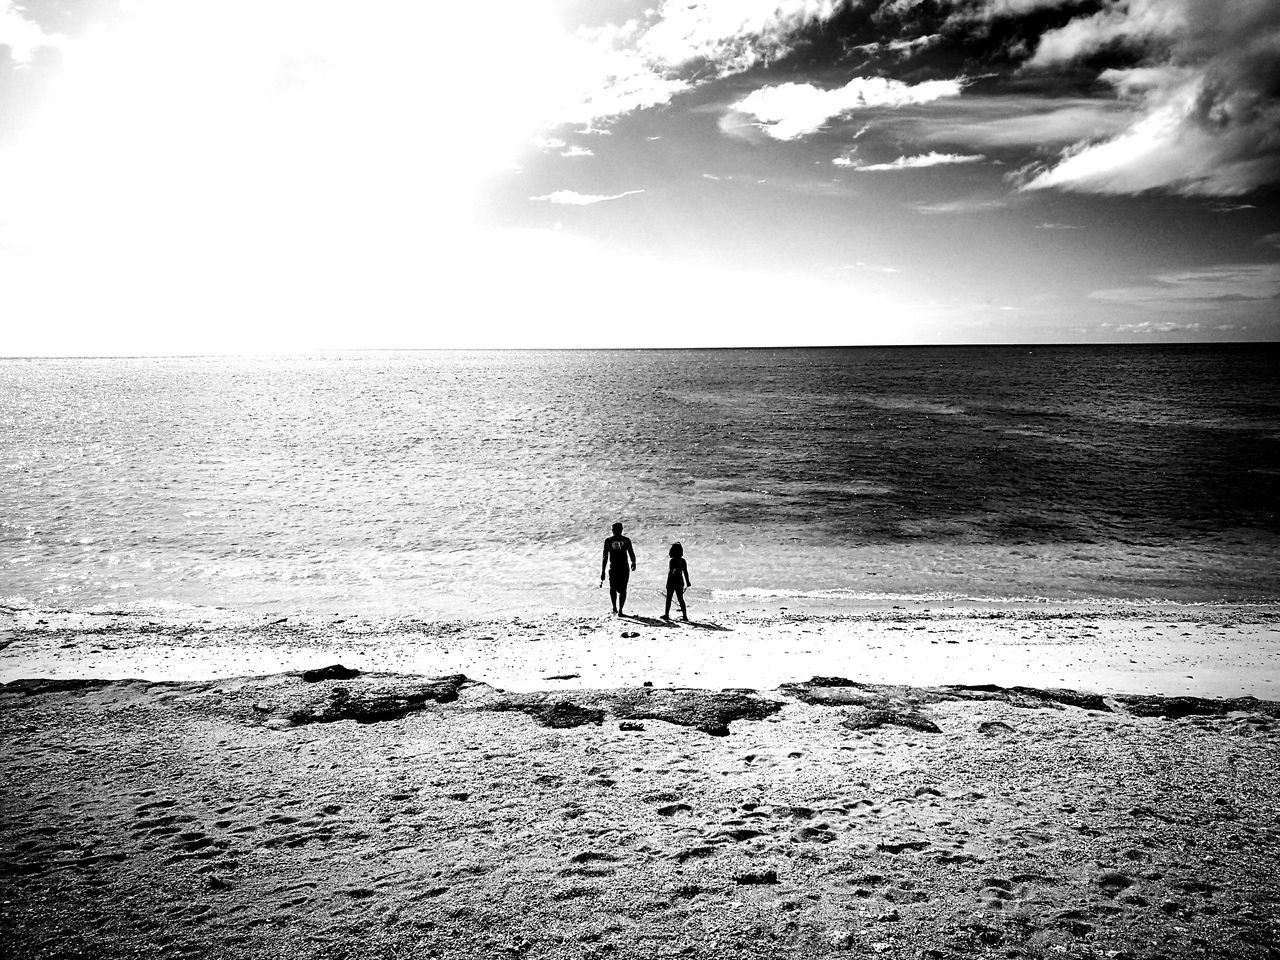 sea, horizon over water, water, beach, togetherness, two people, nature, real people, silhouette, leisure activity, sky, beauty in nature, scenics, men, outdoors, friendship, day, bonding, standing, childhood, people